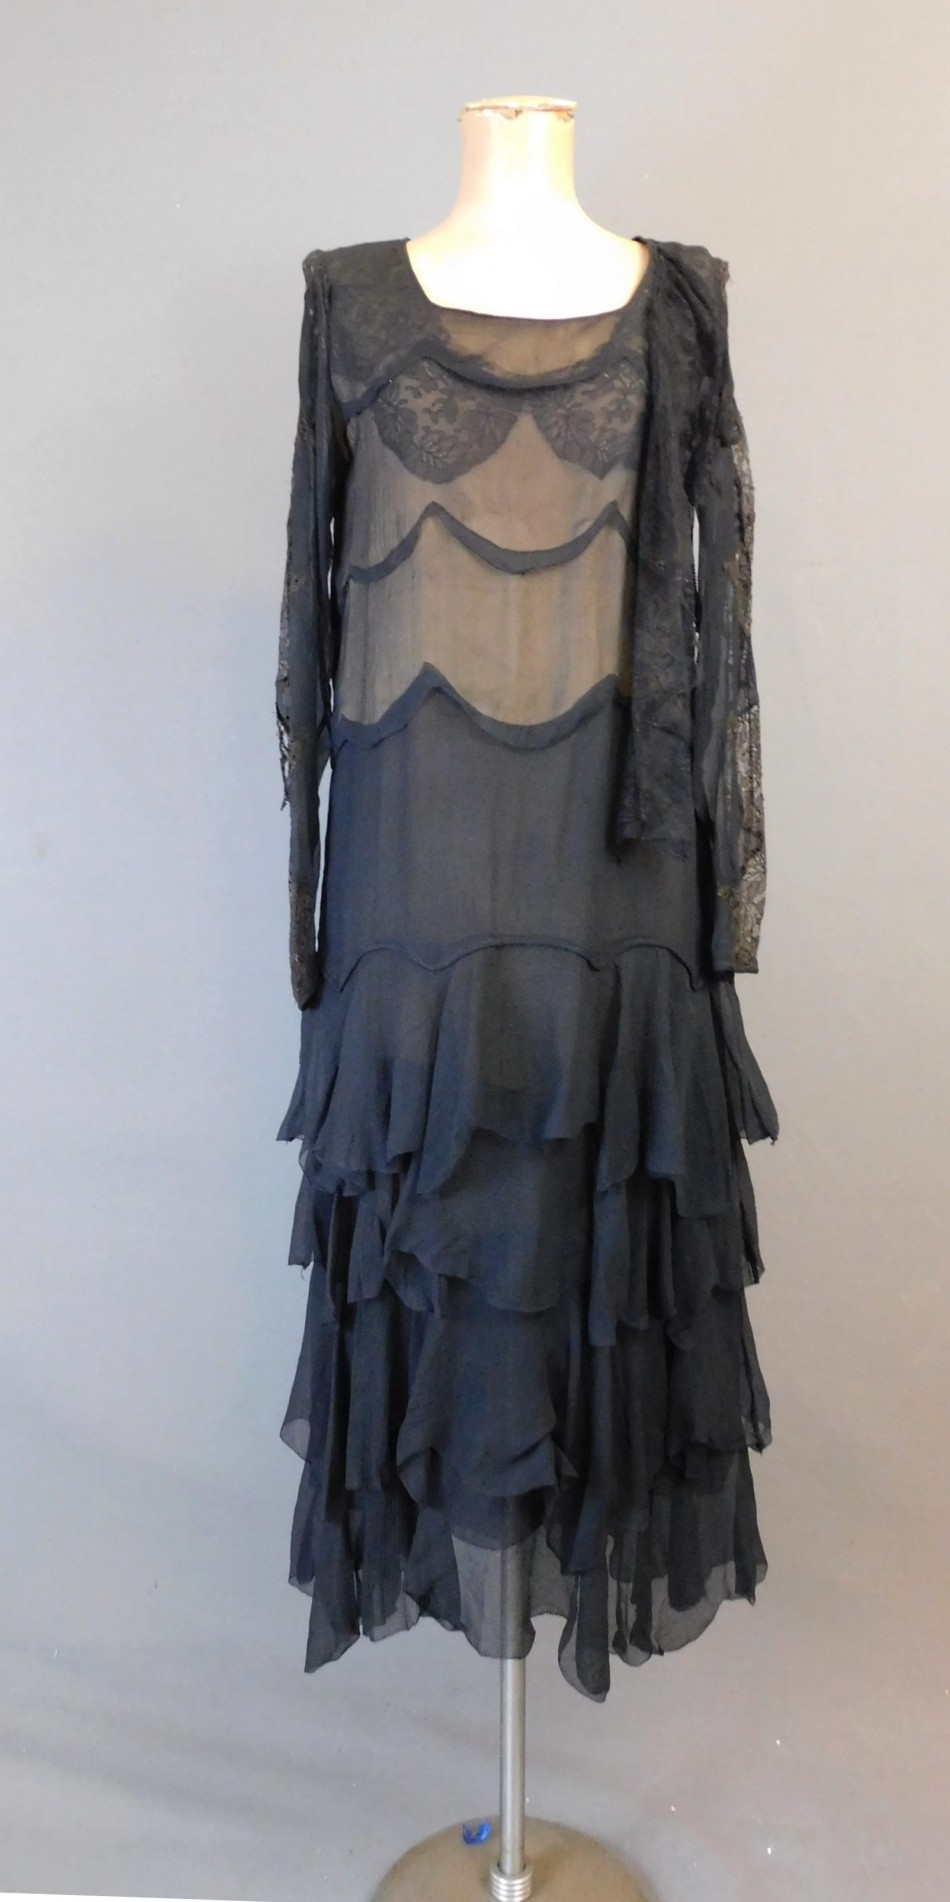 Vintage 1920s Sheer Black Layered Chiffon Dress with Lace, fits 31 inch bust, some issues